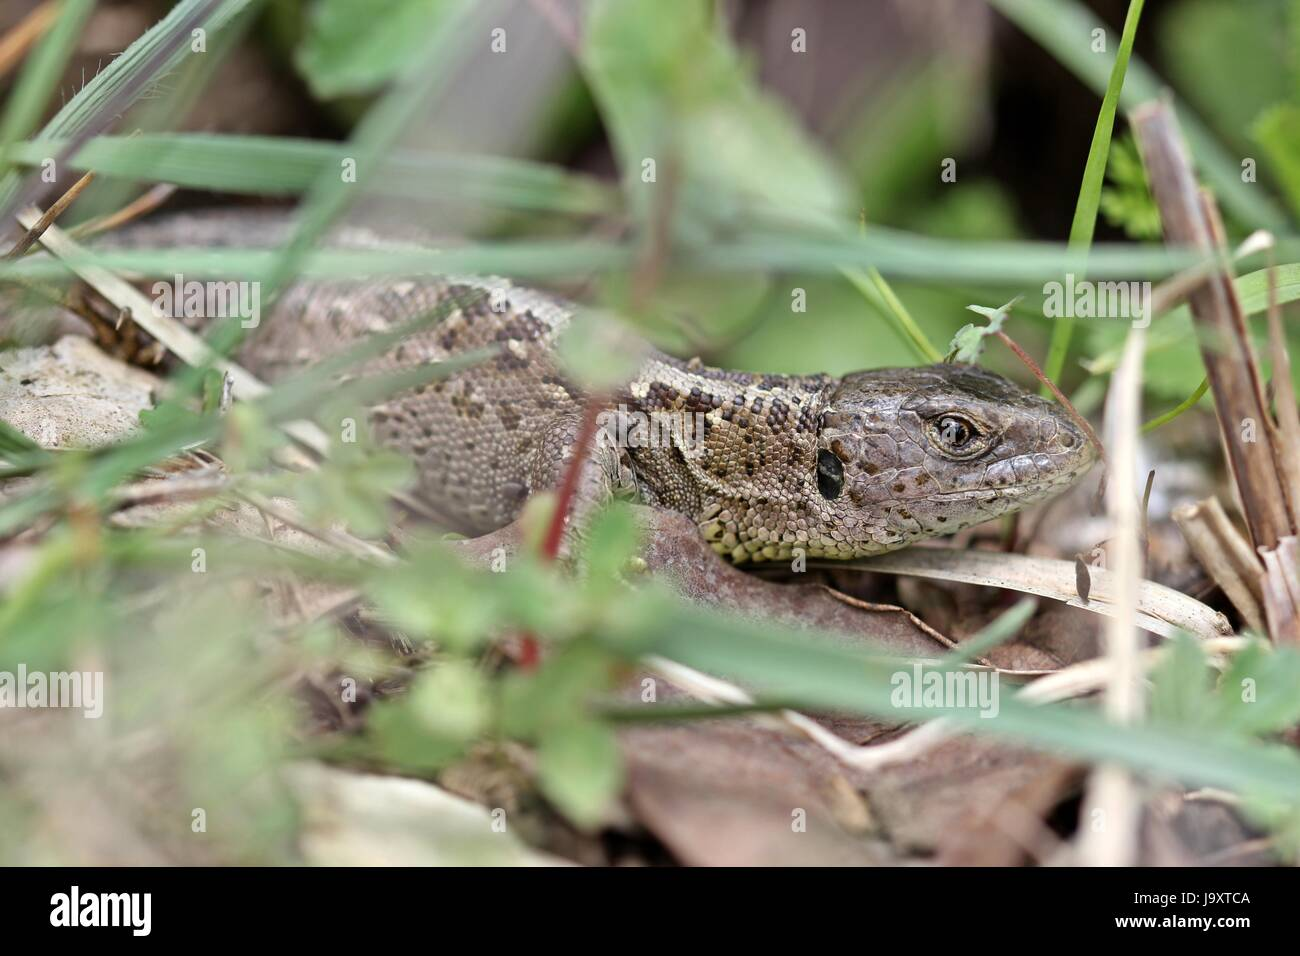 female, lizard, tick, ticks, protected, sheltered, female, plant, reptile, - Stock Image